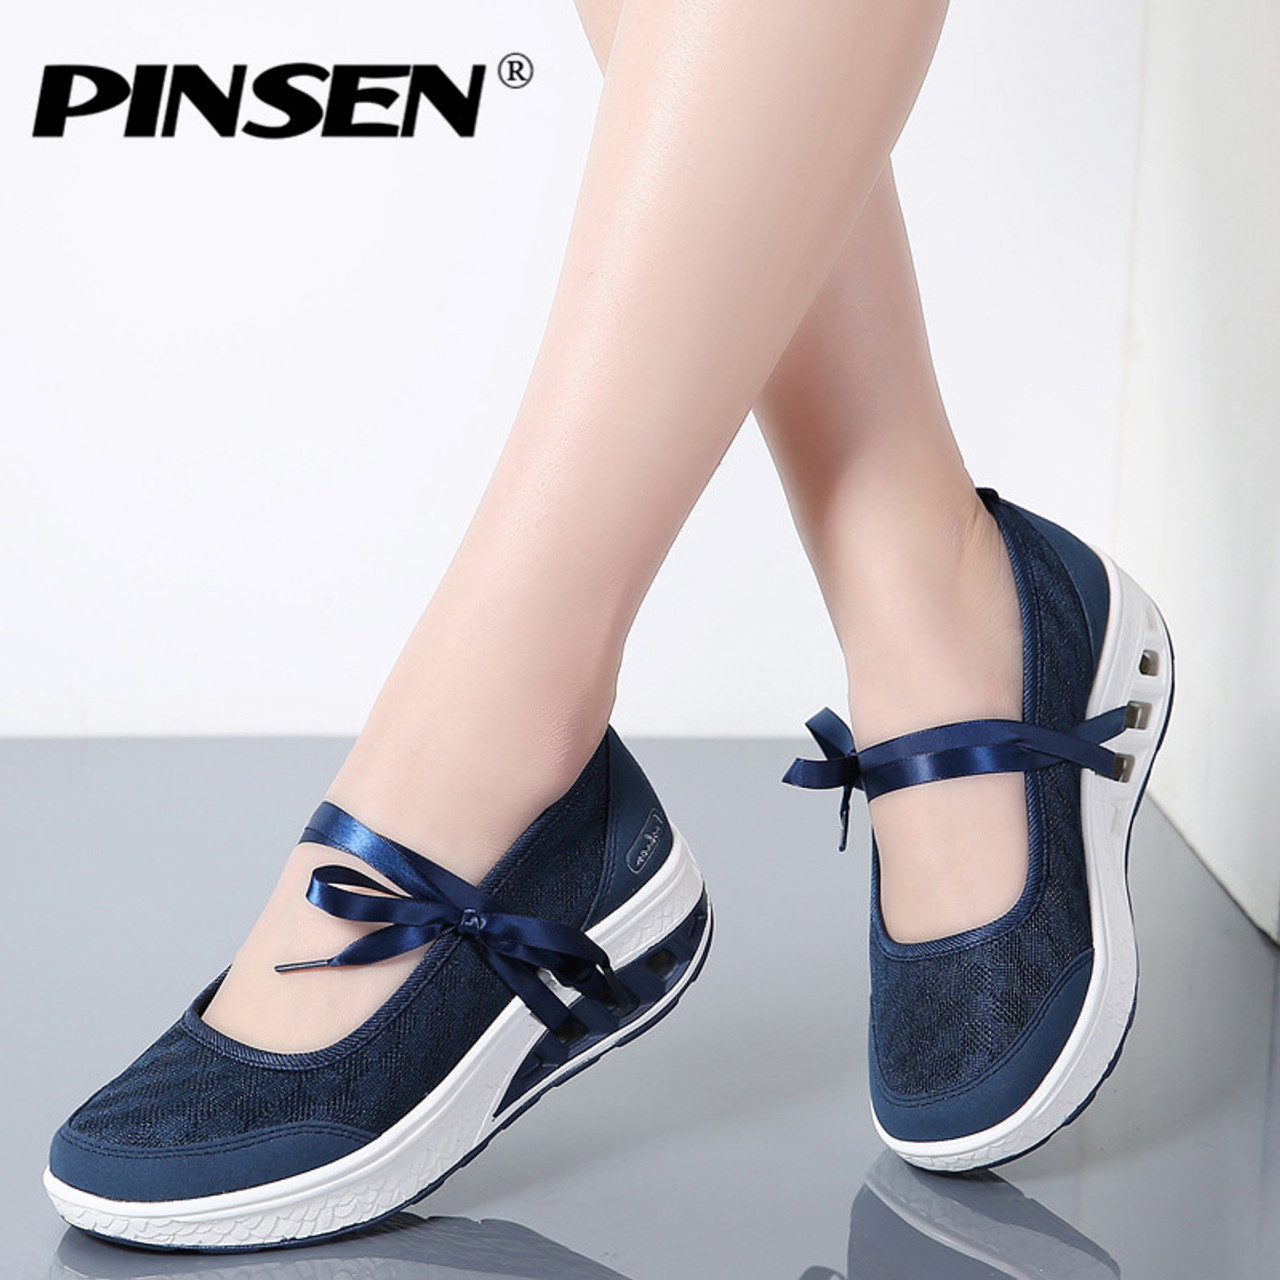 31b3e9172 ... PINSEN 2019 Sneakers Flat Platform Women Shoes Slip On Casual Ladies  Flats Loafers Shoes Woman Moccasins ...